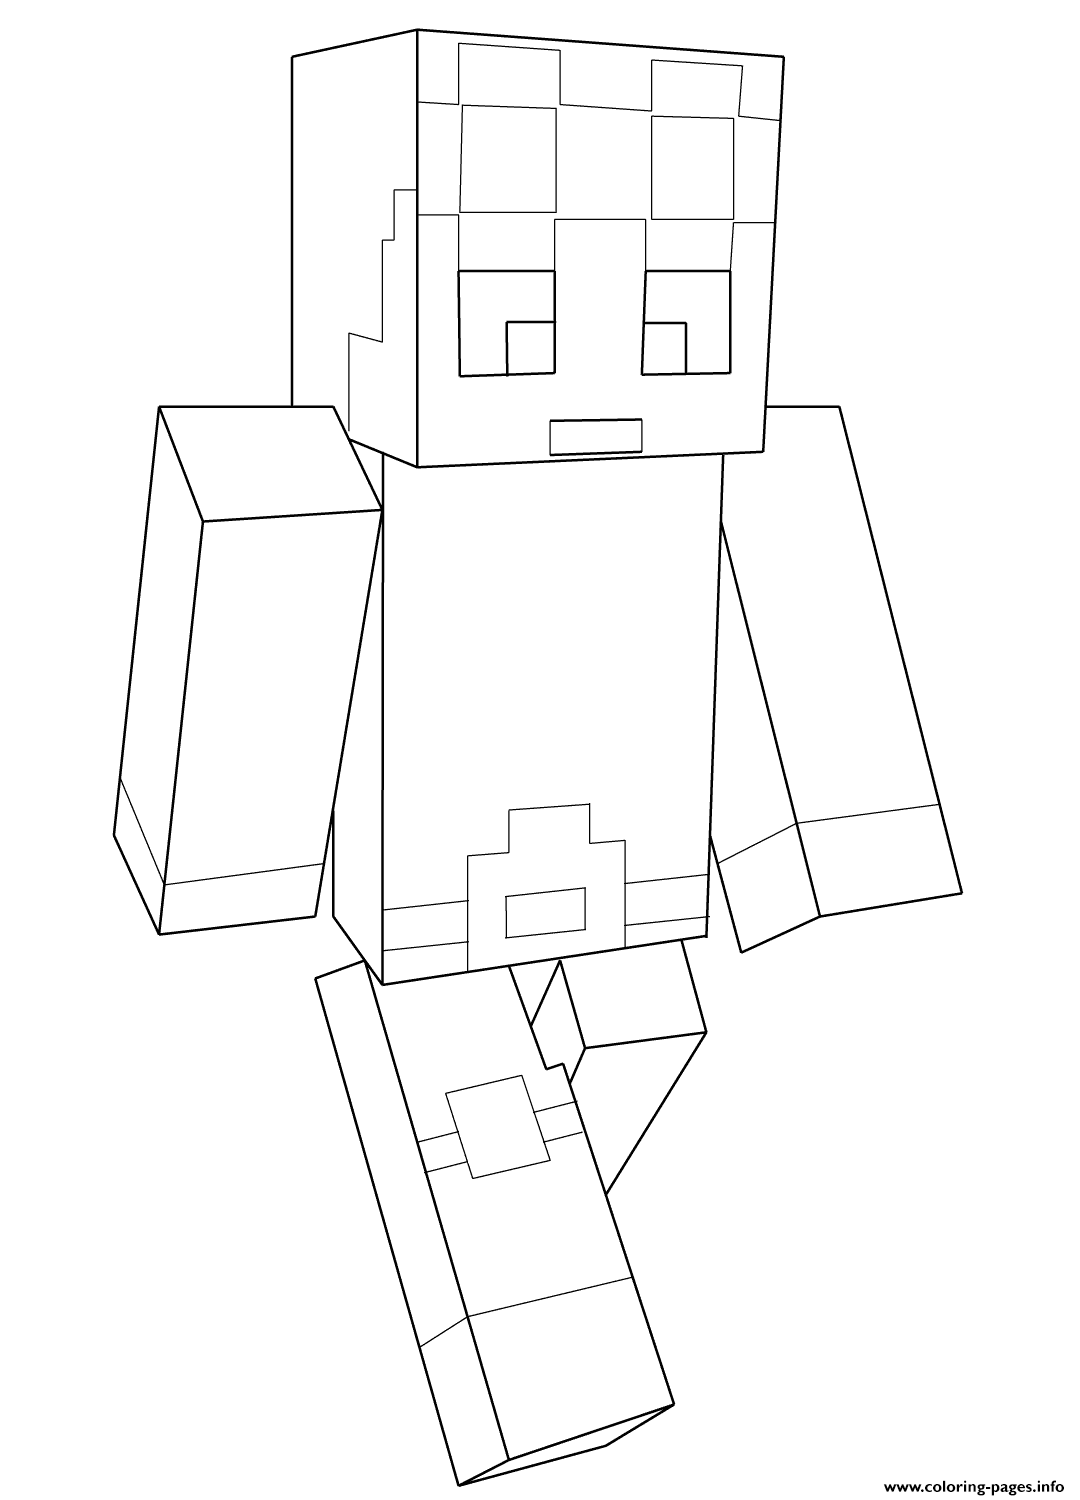 minecraft popularmmos coloring pages coloring pages autominecraft dantdm coloring pages coloring pages